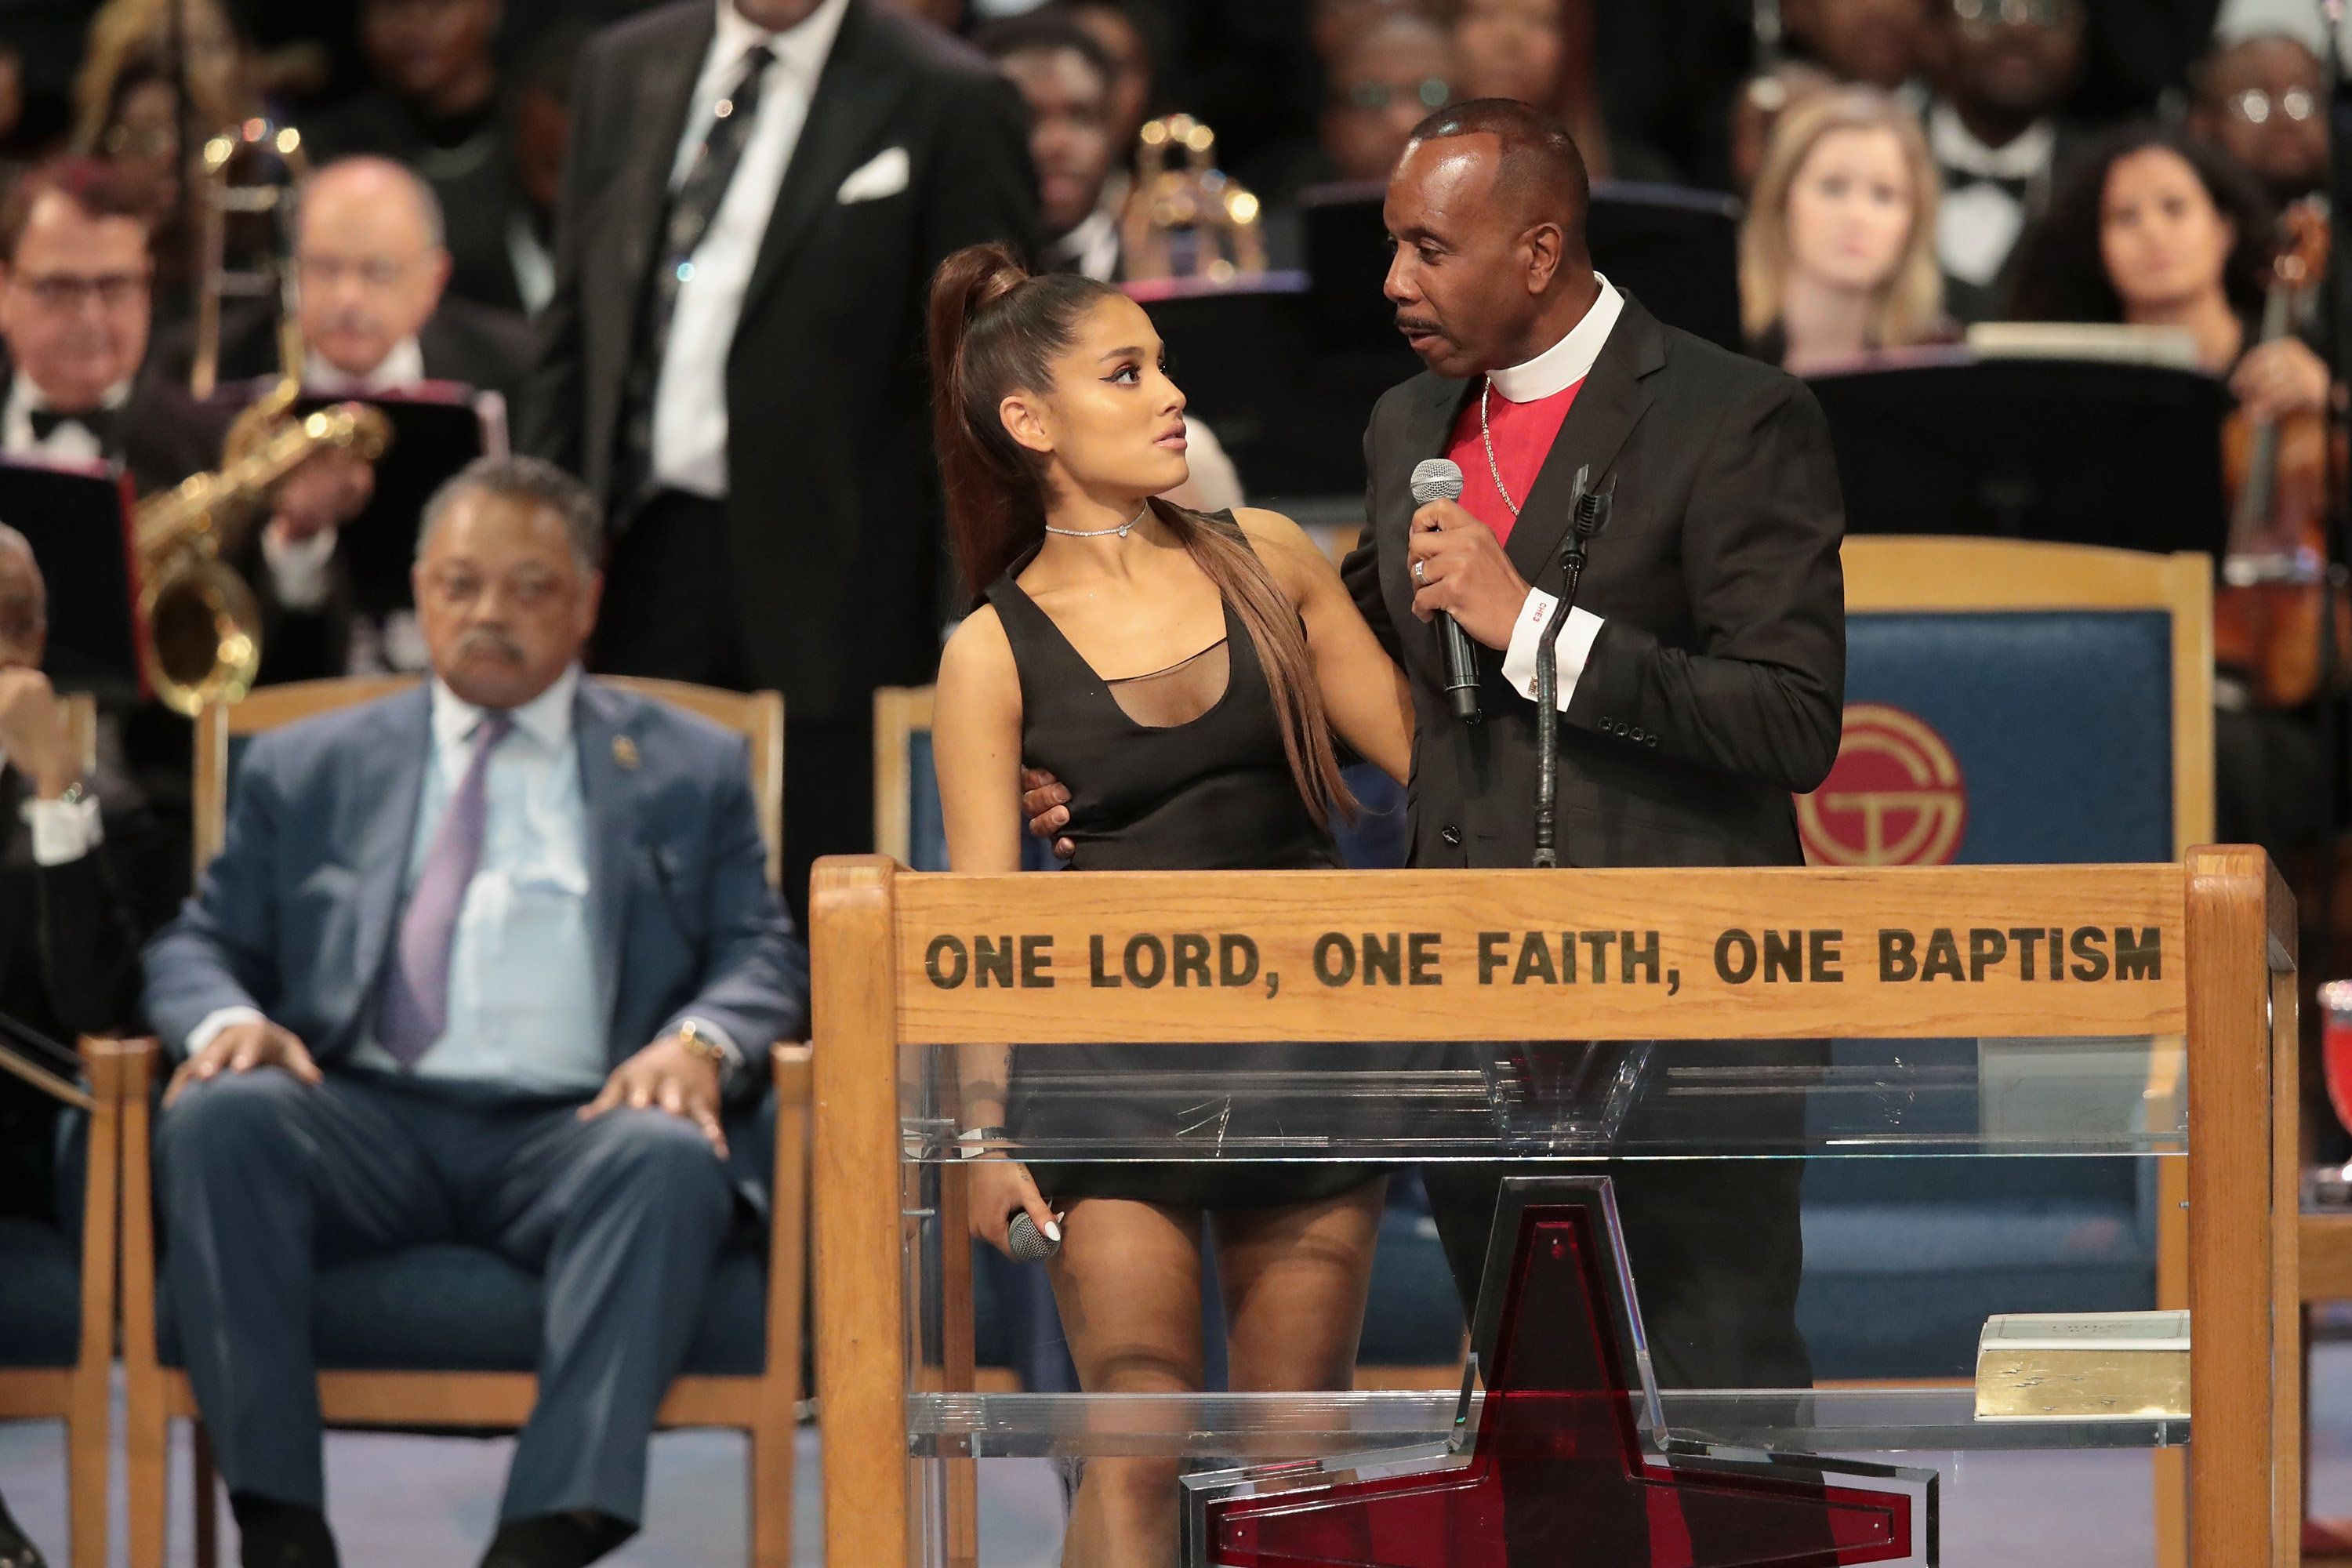 DETROIT, MI - AUGUST 31:  Singer Ariana Grande speaks with Bishop Charles Ellis III after performing at the funeral for Aretha Franklin at the Greater Grace Temple on August 31, 2018 in Detroit, Michigan. Franklin died at the age of 76 at her home in Detroit on August 16.  (Photo by Scott Olson/Getty Images)